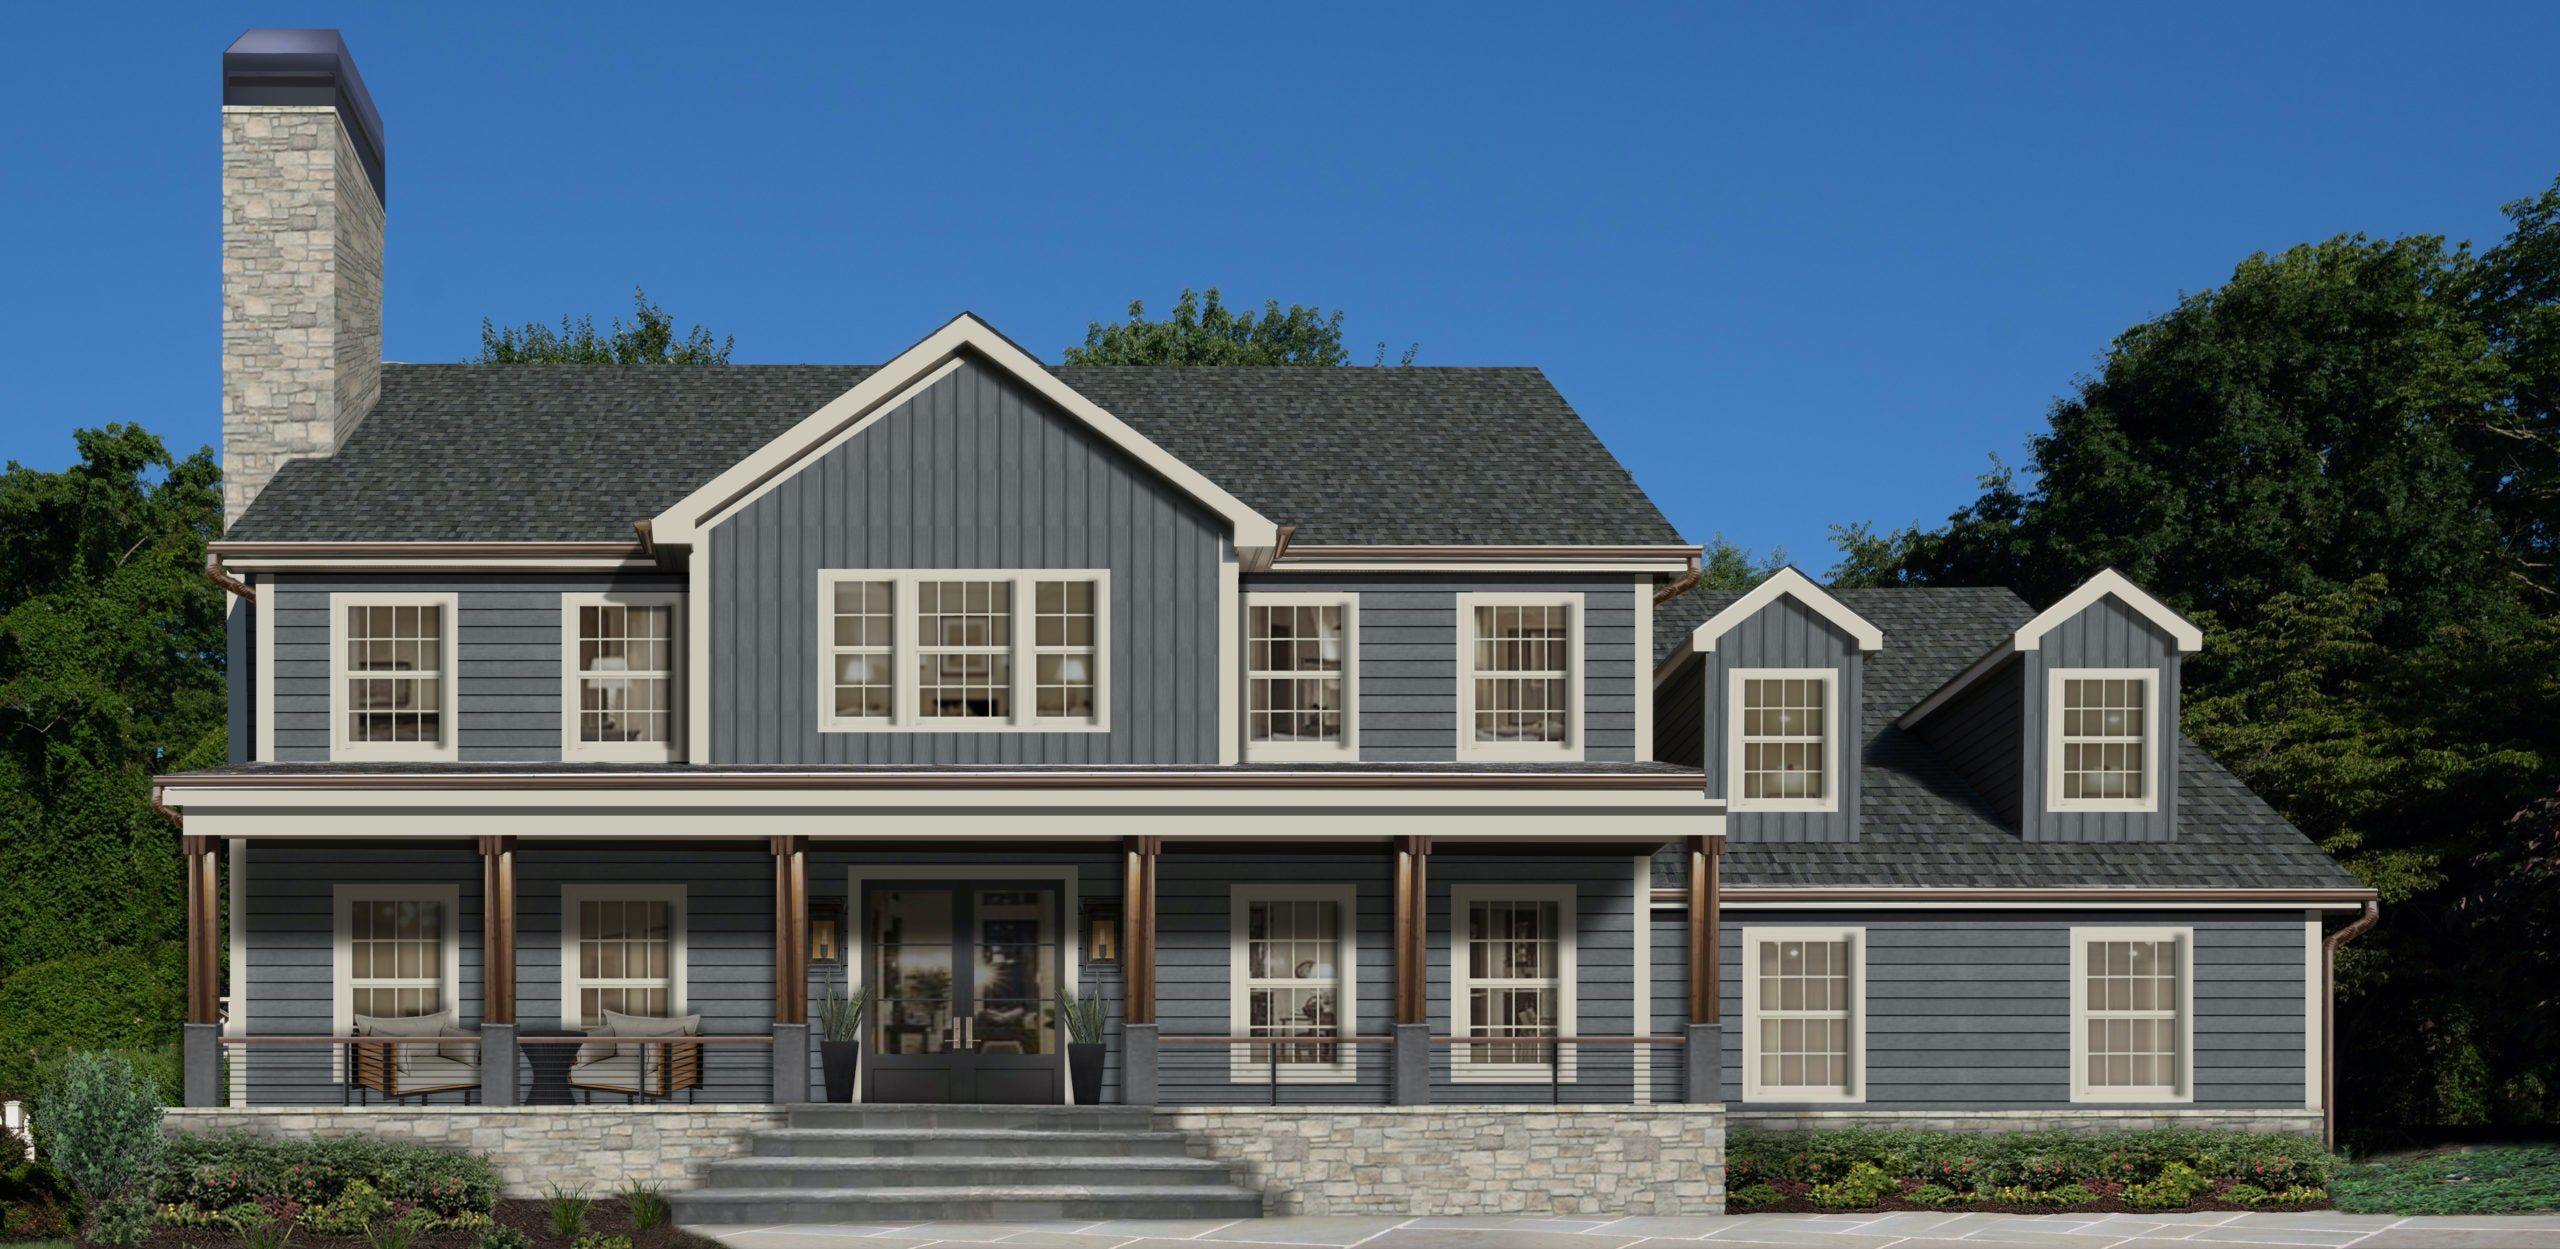 Rendering of a large slate colored home